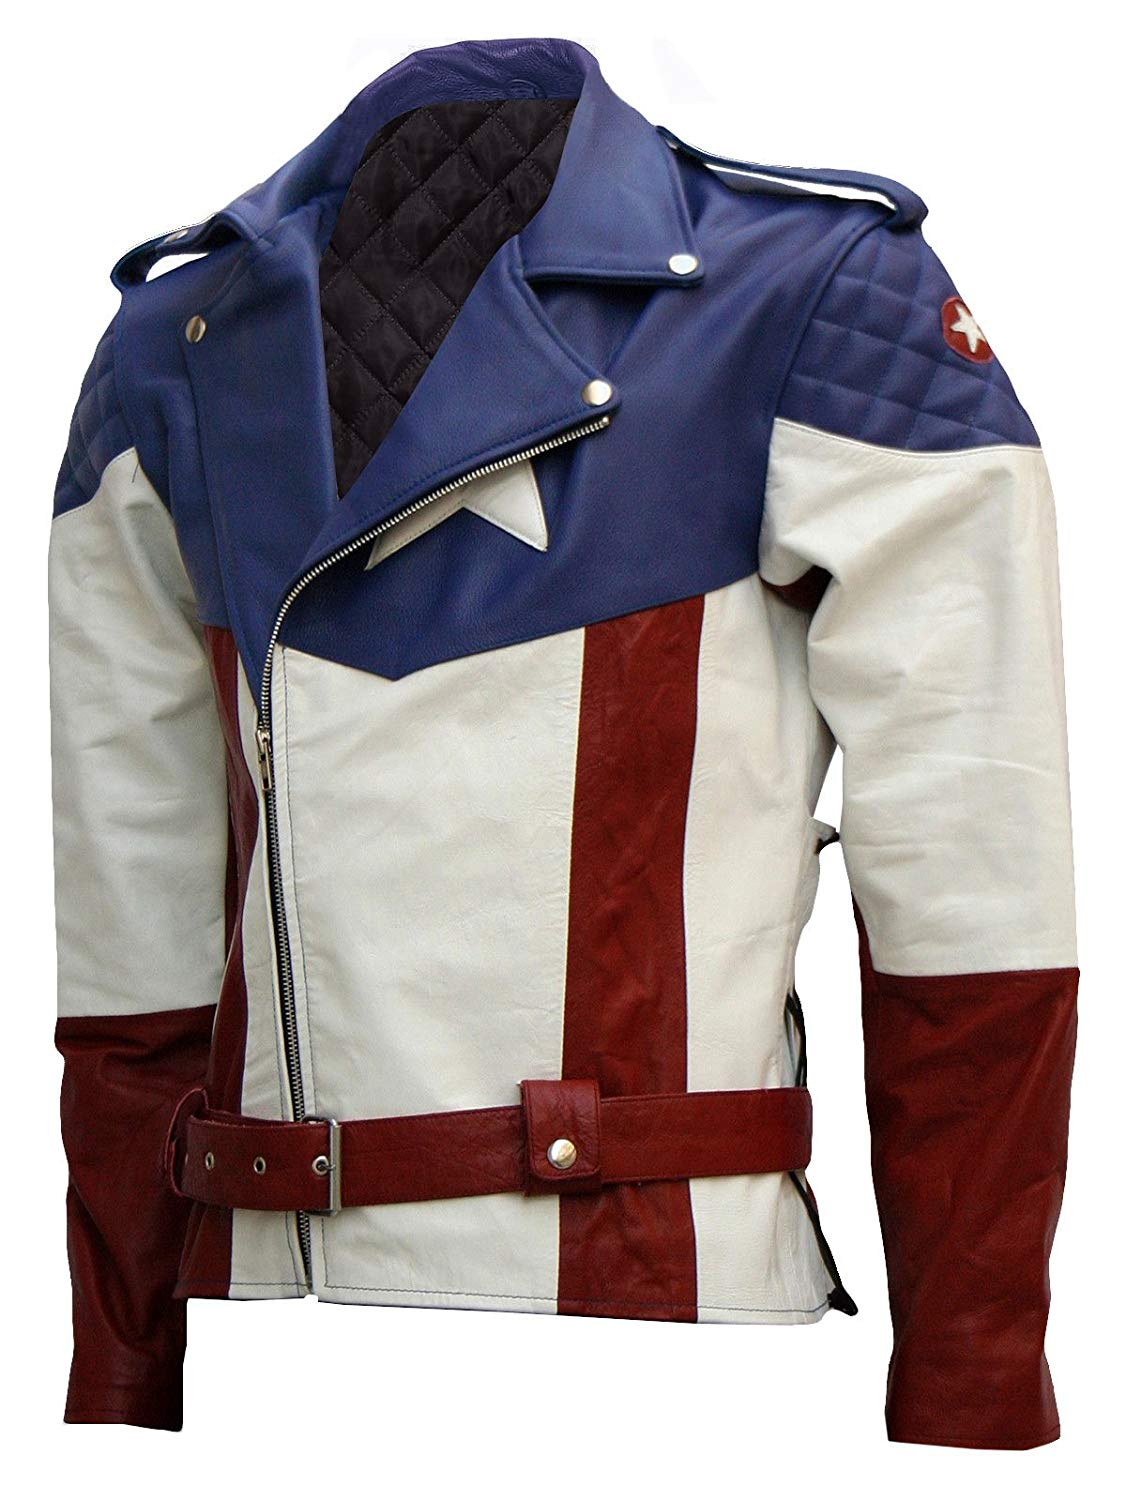 Xport Designs Real Leather X-Small Captain America Jacket